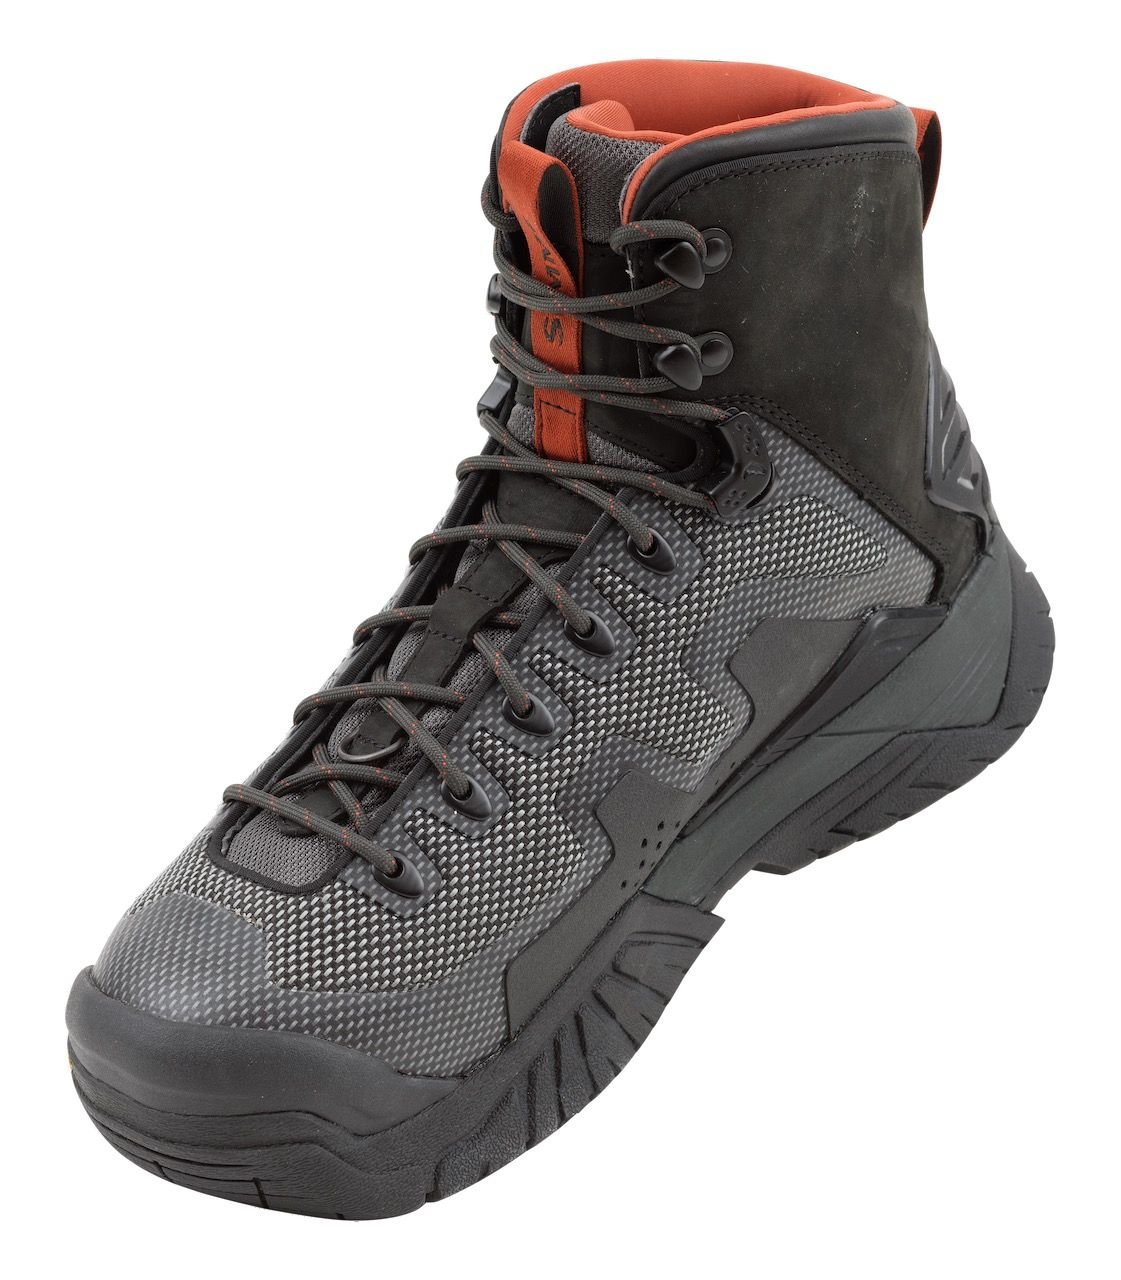 Simms G4 Pro Boot Simms Wading Boots